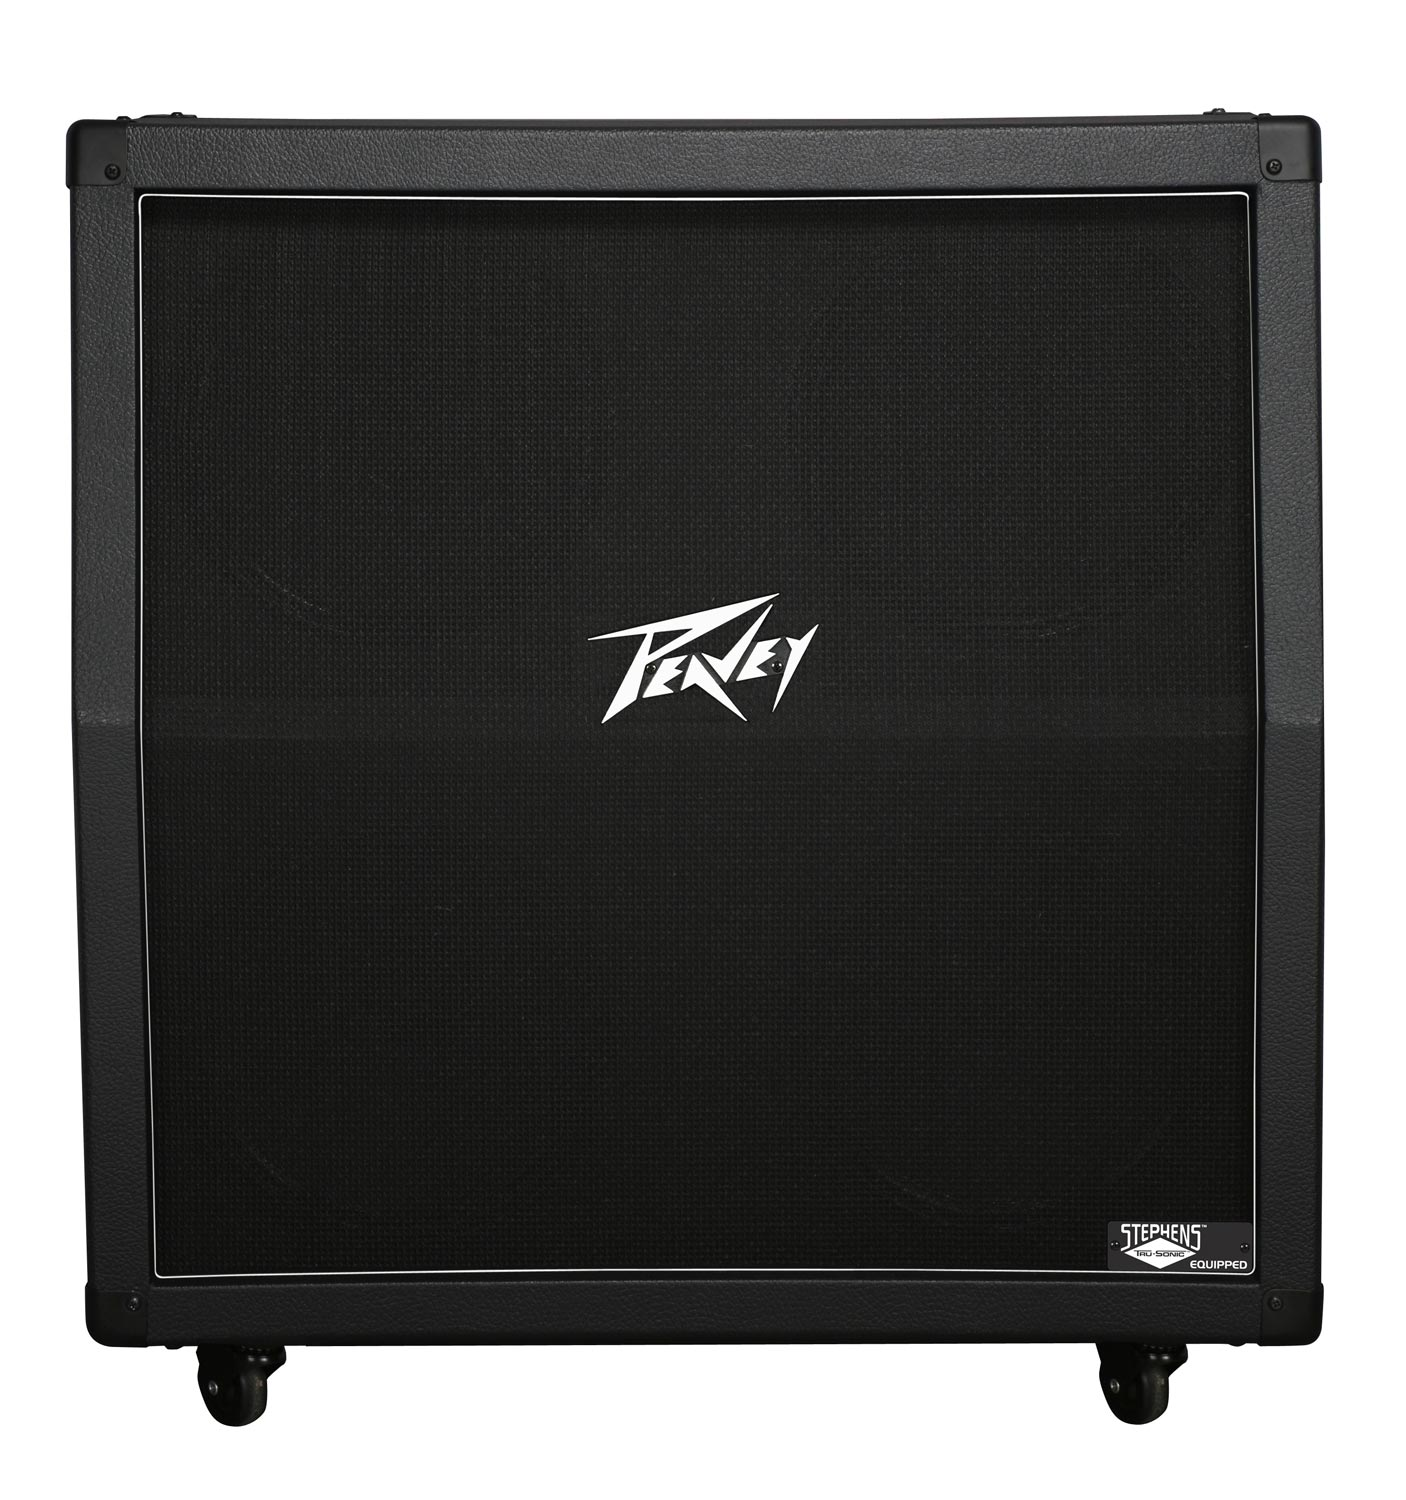 2 peavey 430a 412 guitar slant cabinet celestion greenback 4 12 speakers pev16 package86. Black Bedroom Furniture Sets. Home Design Ideas